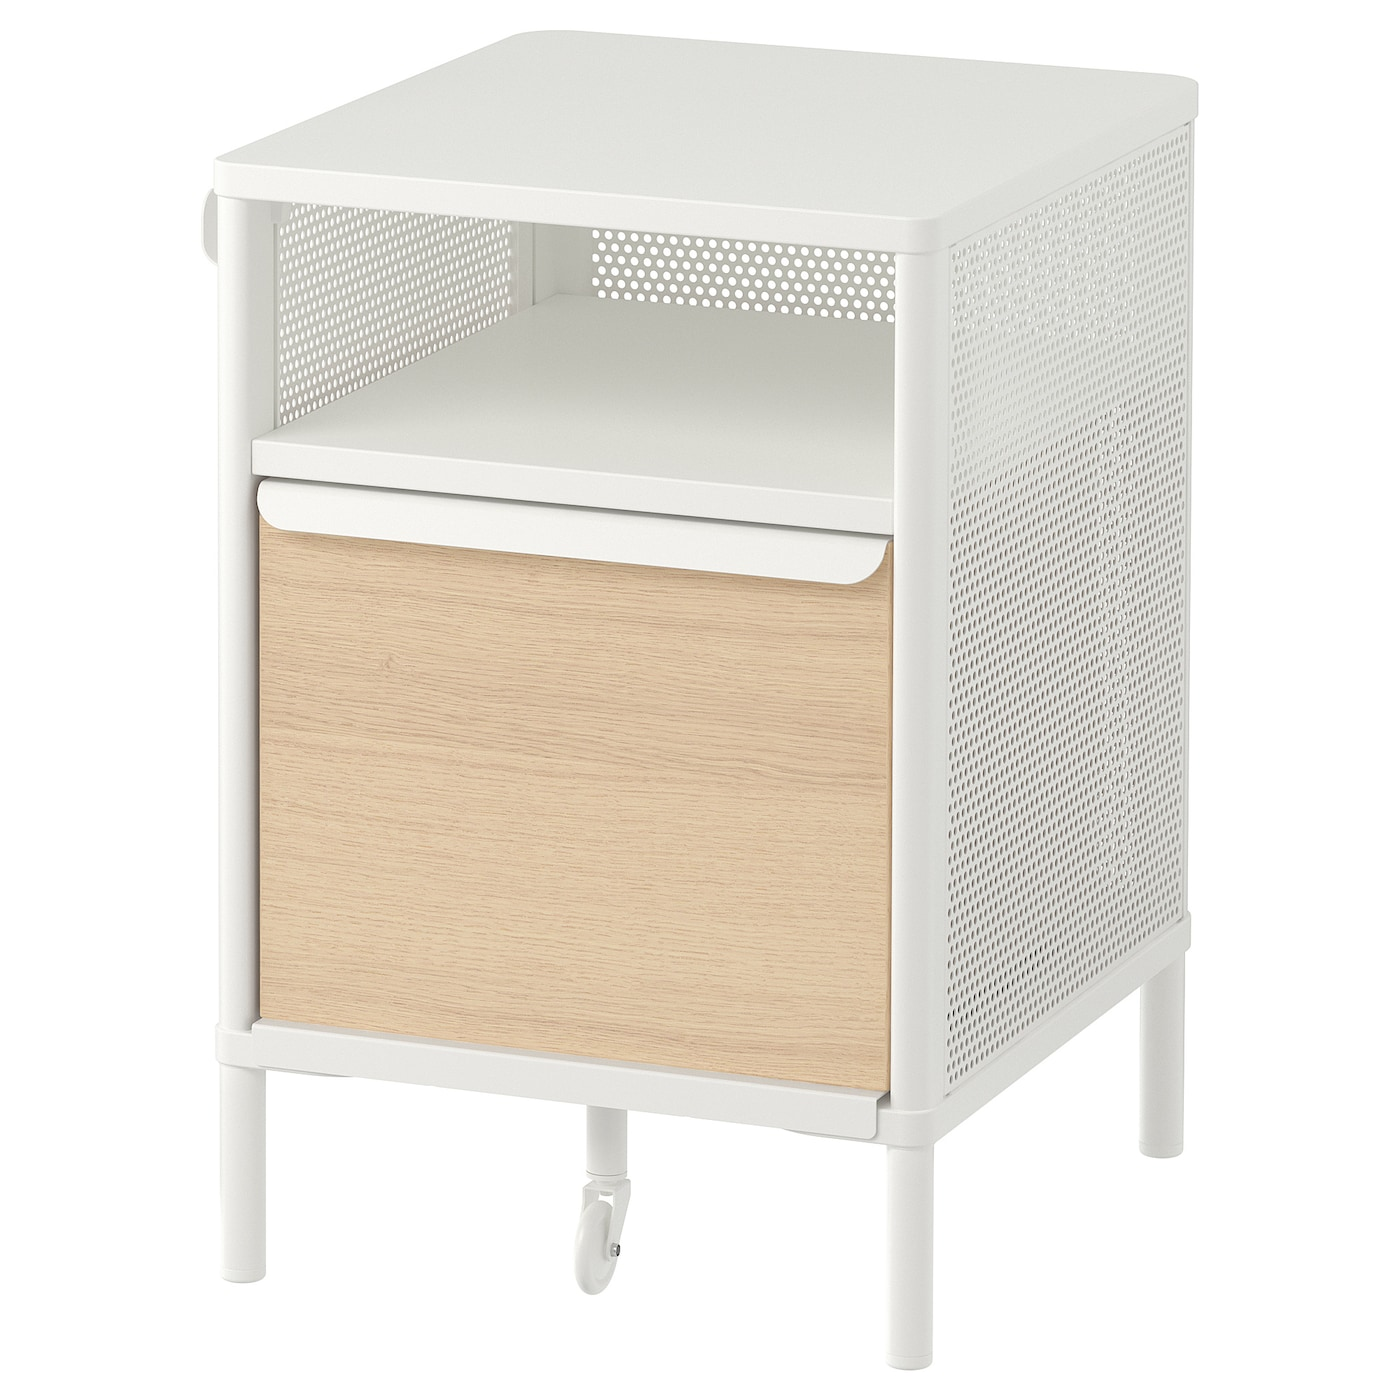 Ikea Bekant Storage Unit On Legs 10 Year Guarantee Read About The Terms In